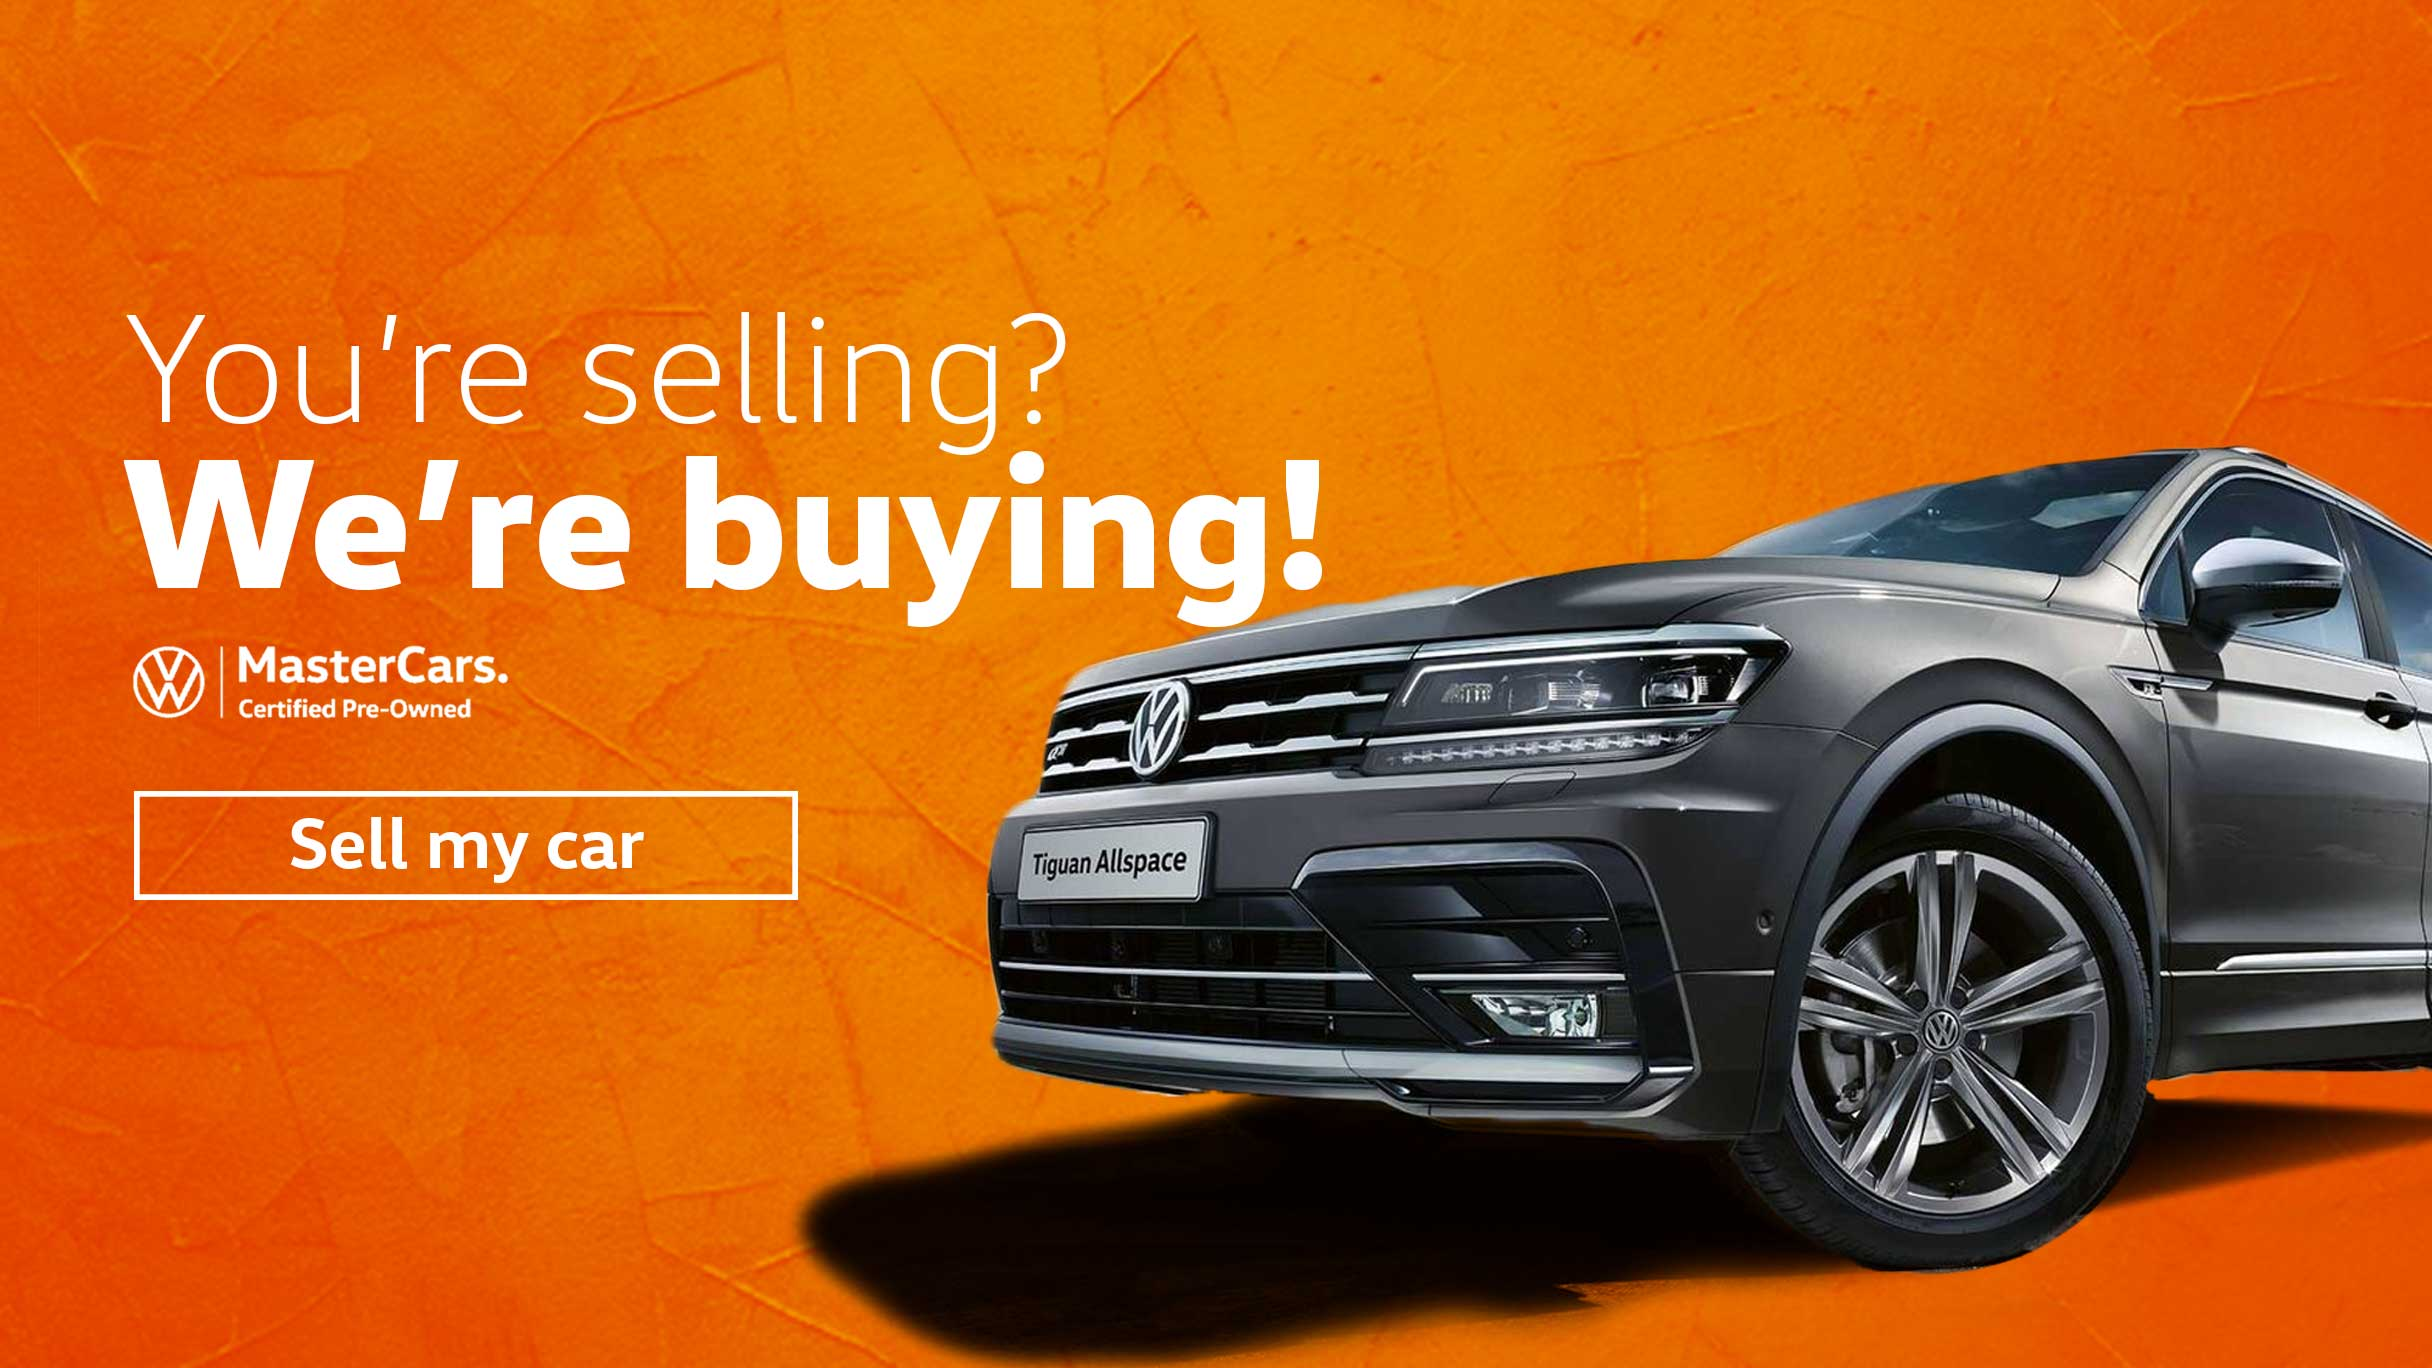 Barons VW buys cars -sell you car to us